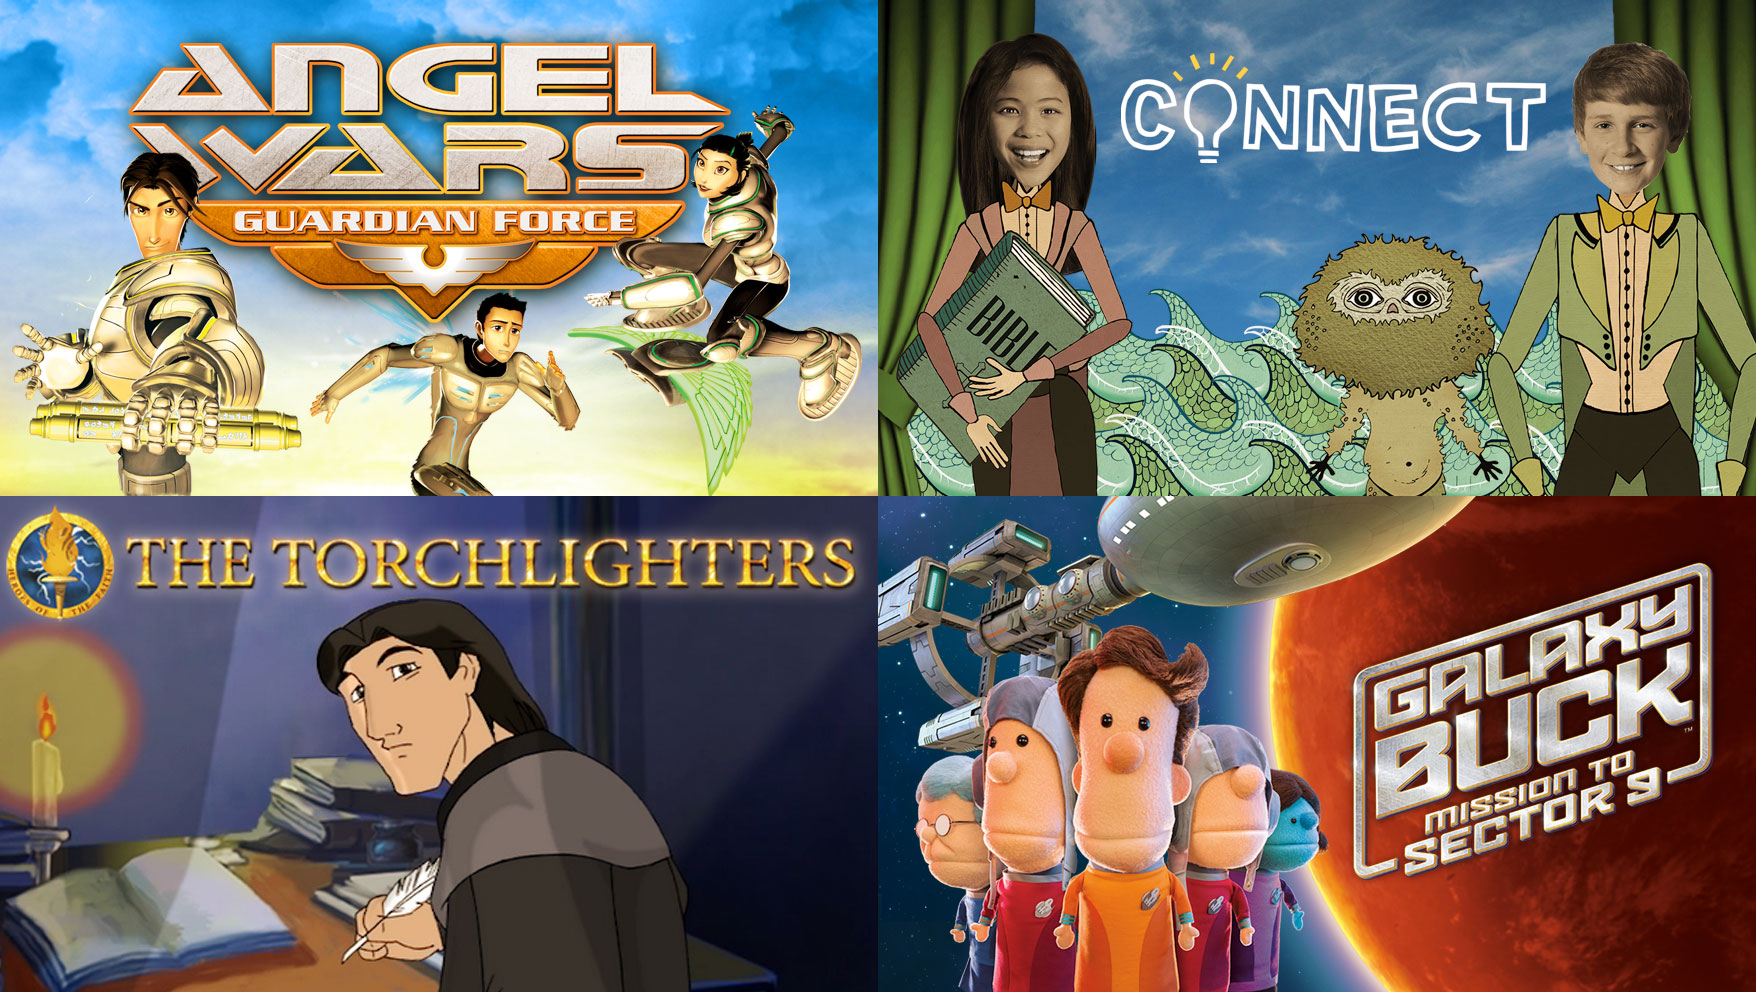 The Best Christian Shows for Pre-Tweens